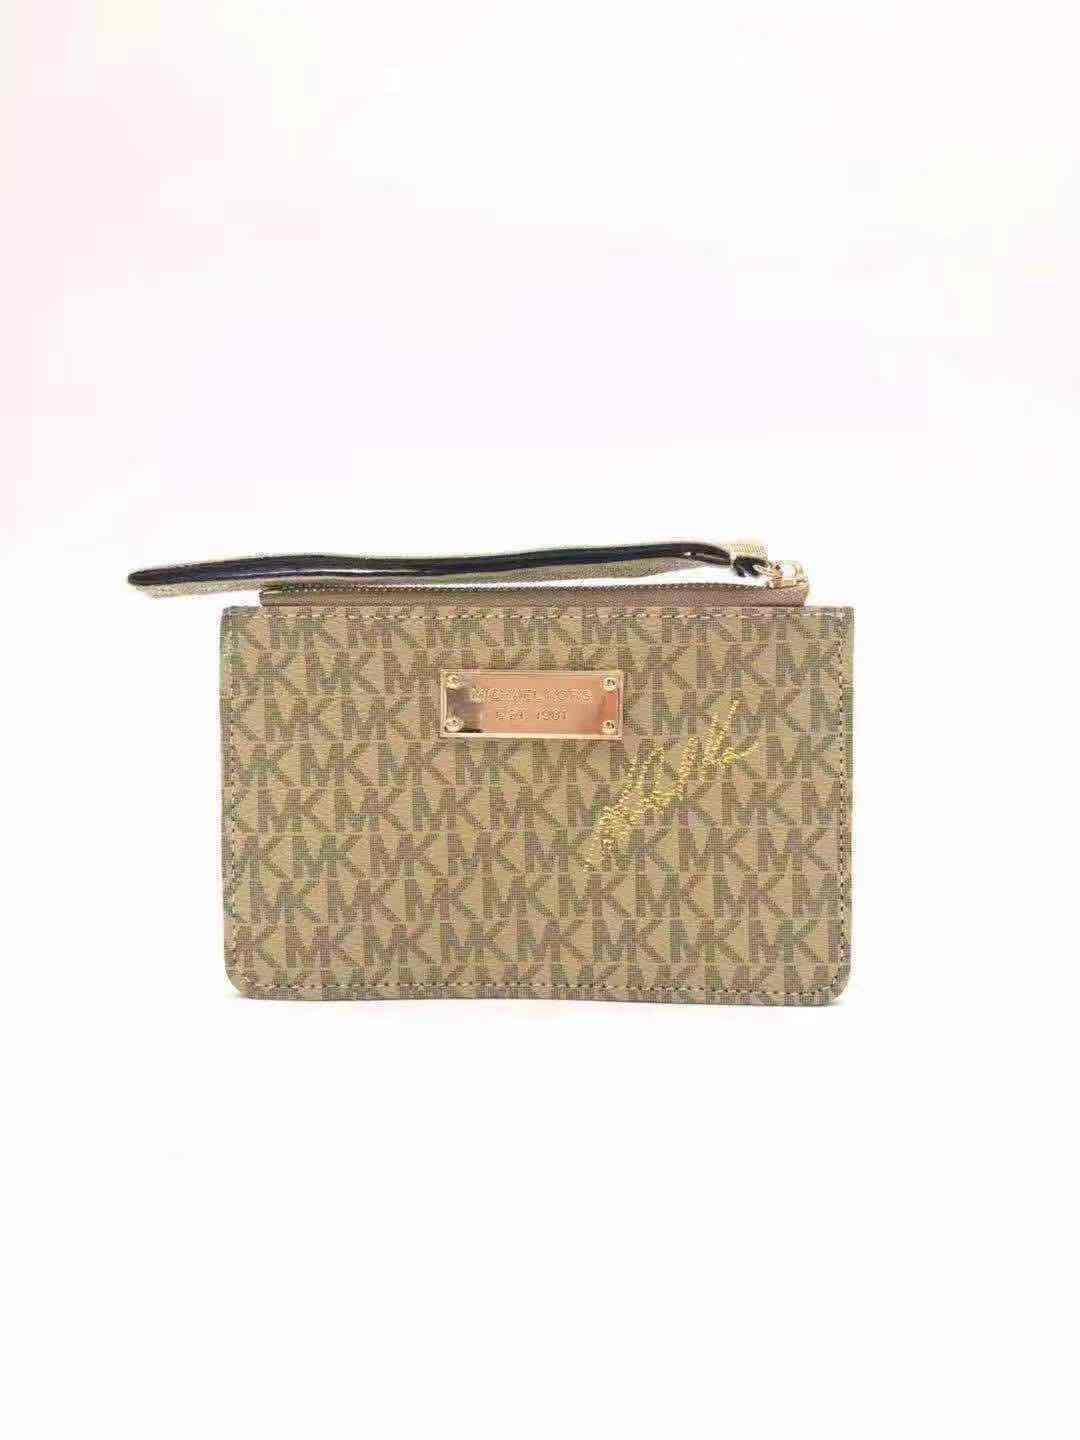 newest style hot-seeling original best quality for MK Michael kors Mini Wallet Coin Purse Wallets Clutch Bags